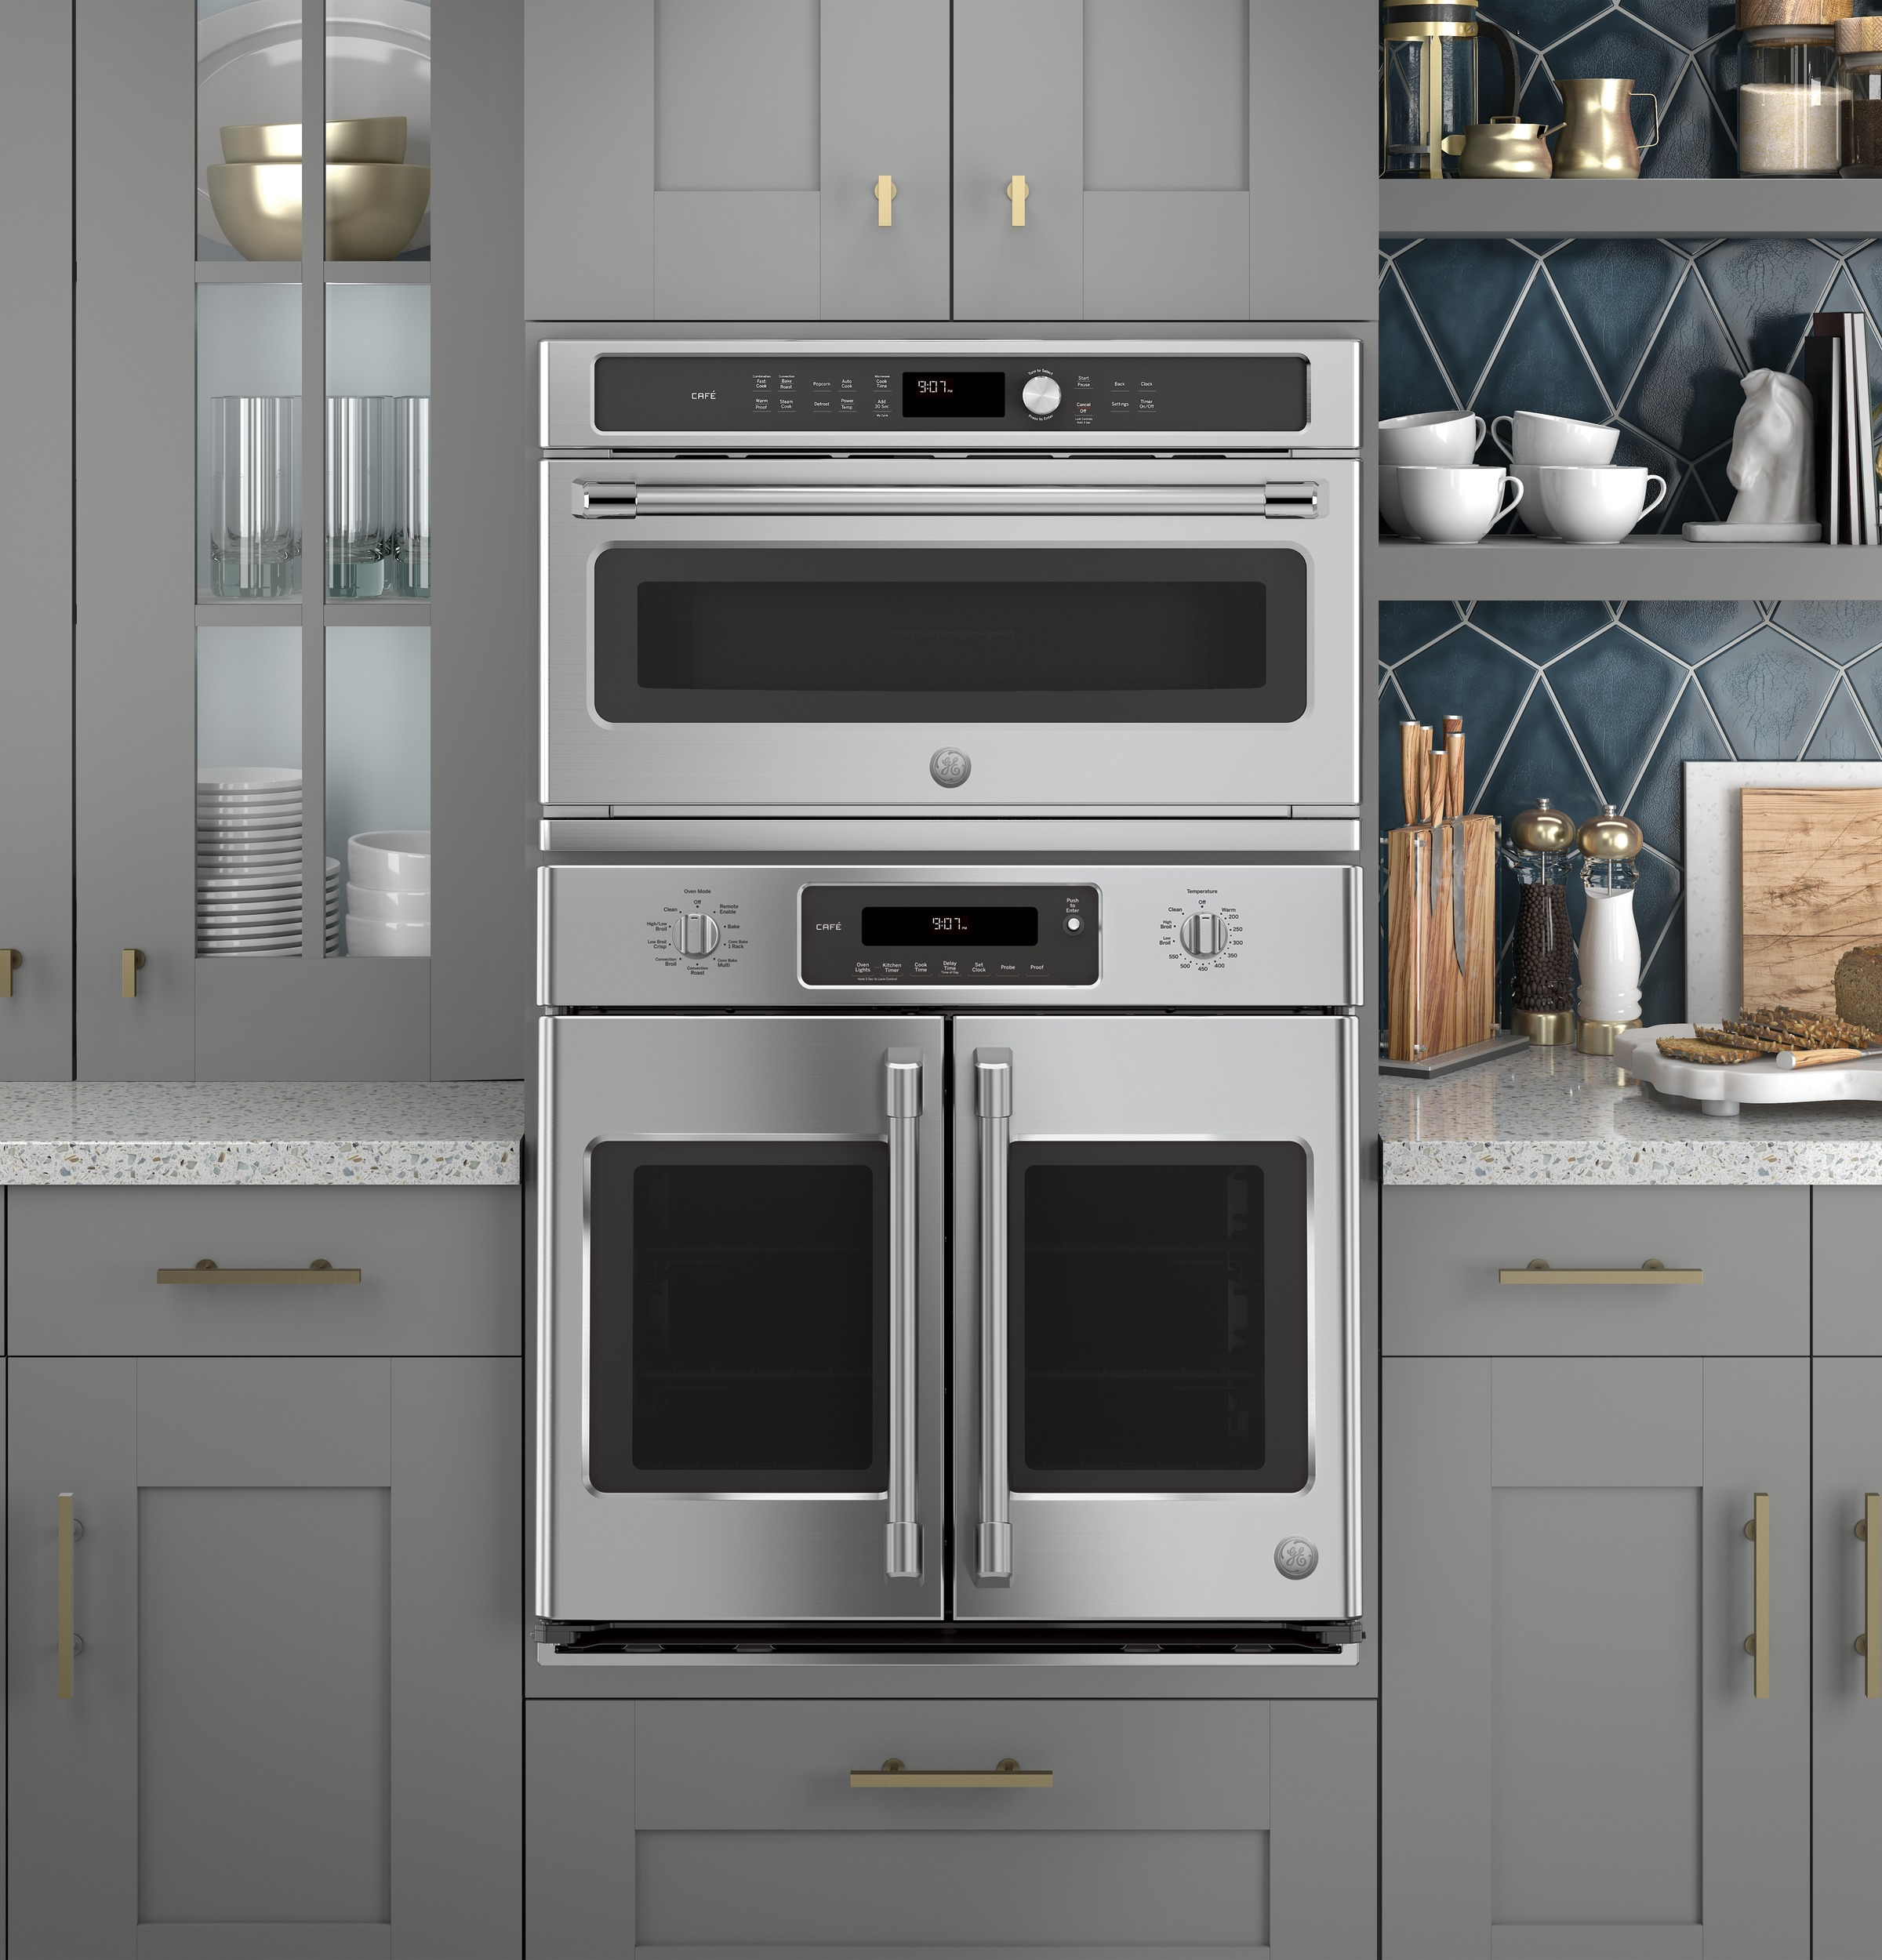 Ge Caf Series 30 Built In French Door Single Convection Wall Oven True T 23 Wiring Diagram 1 Of